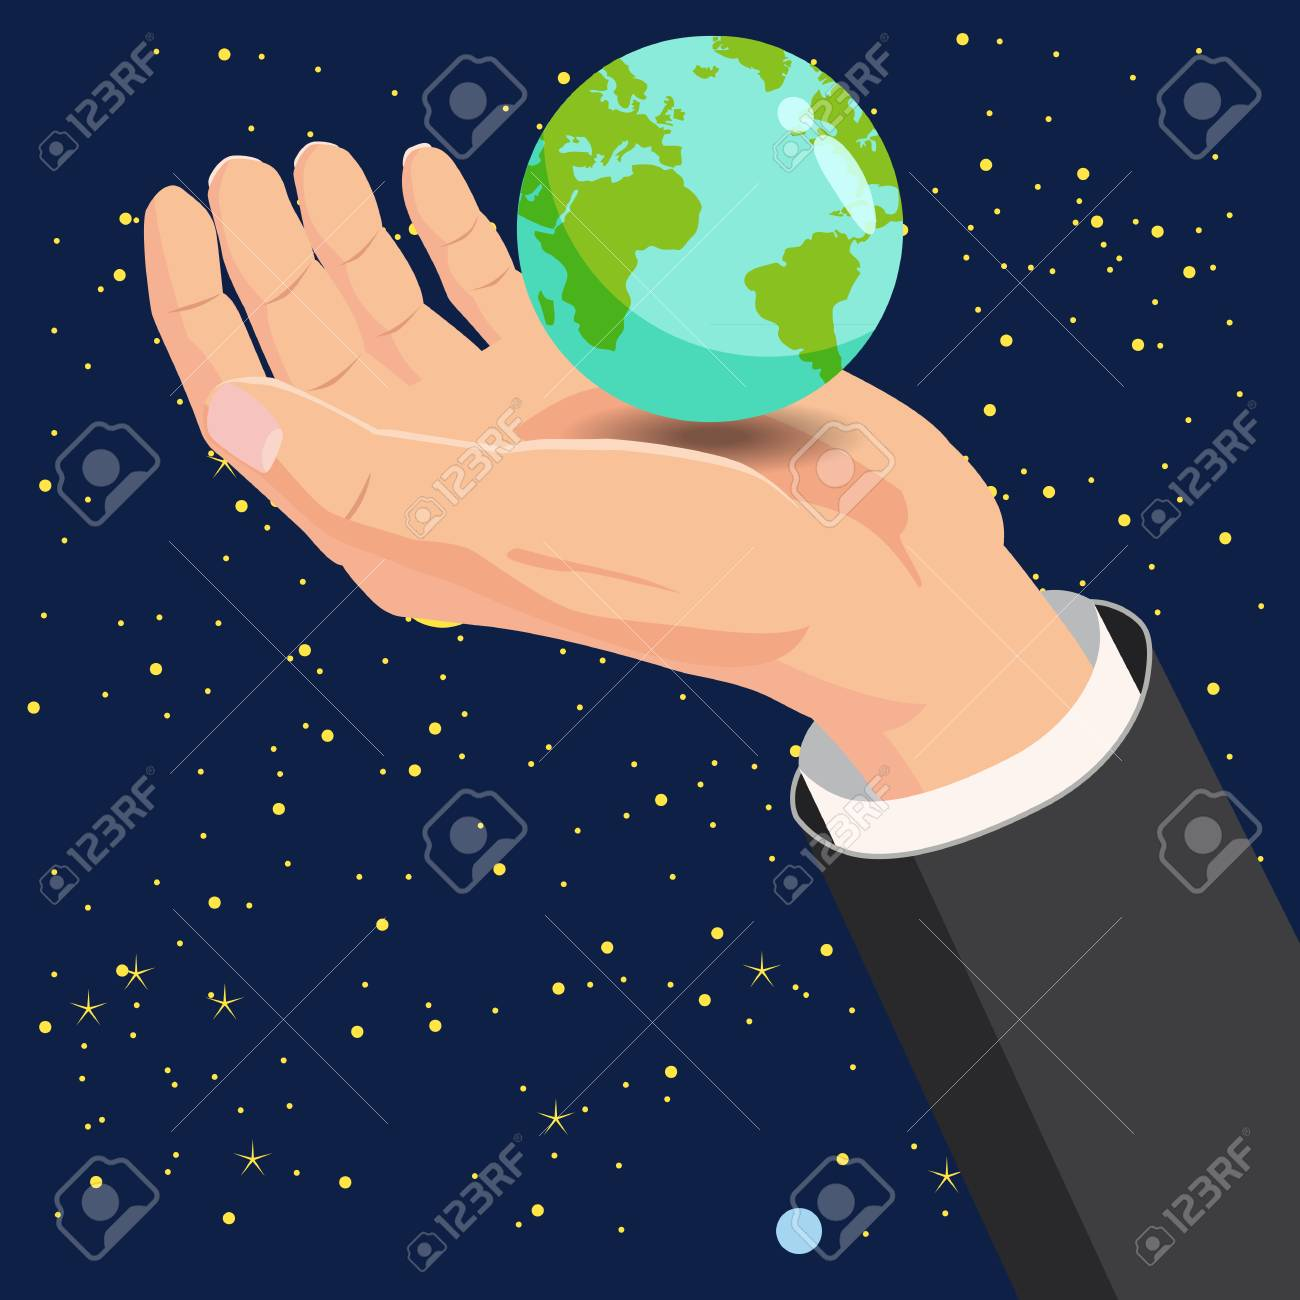 Hand holding Earth globe in space vector illustration, Cartoon